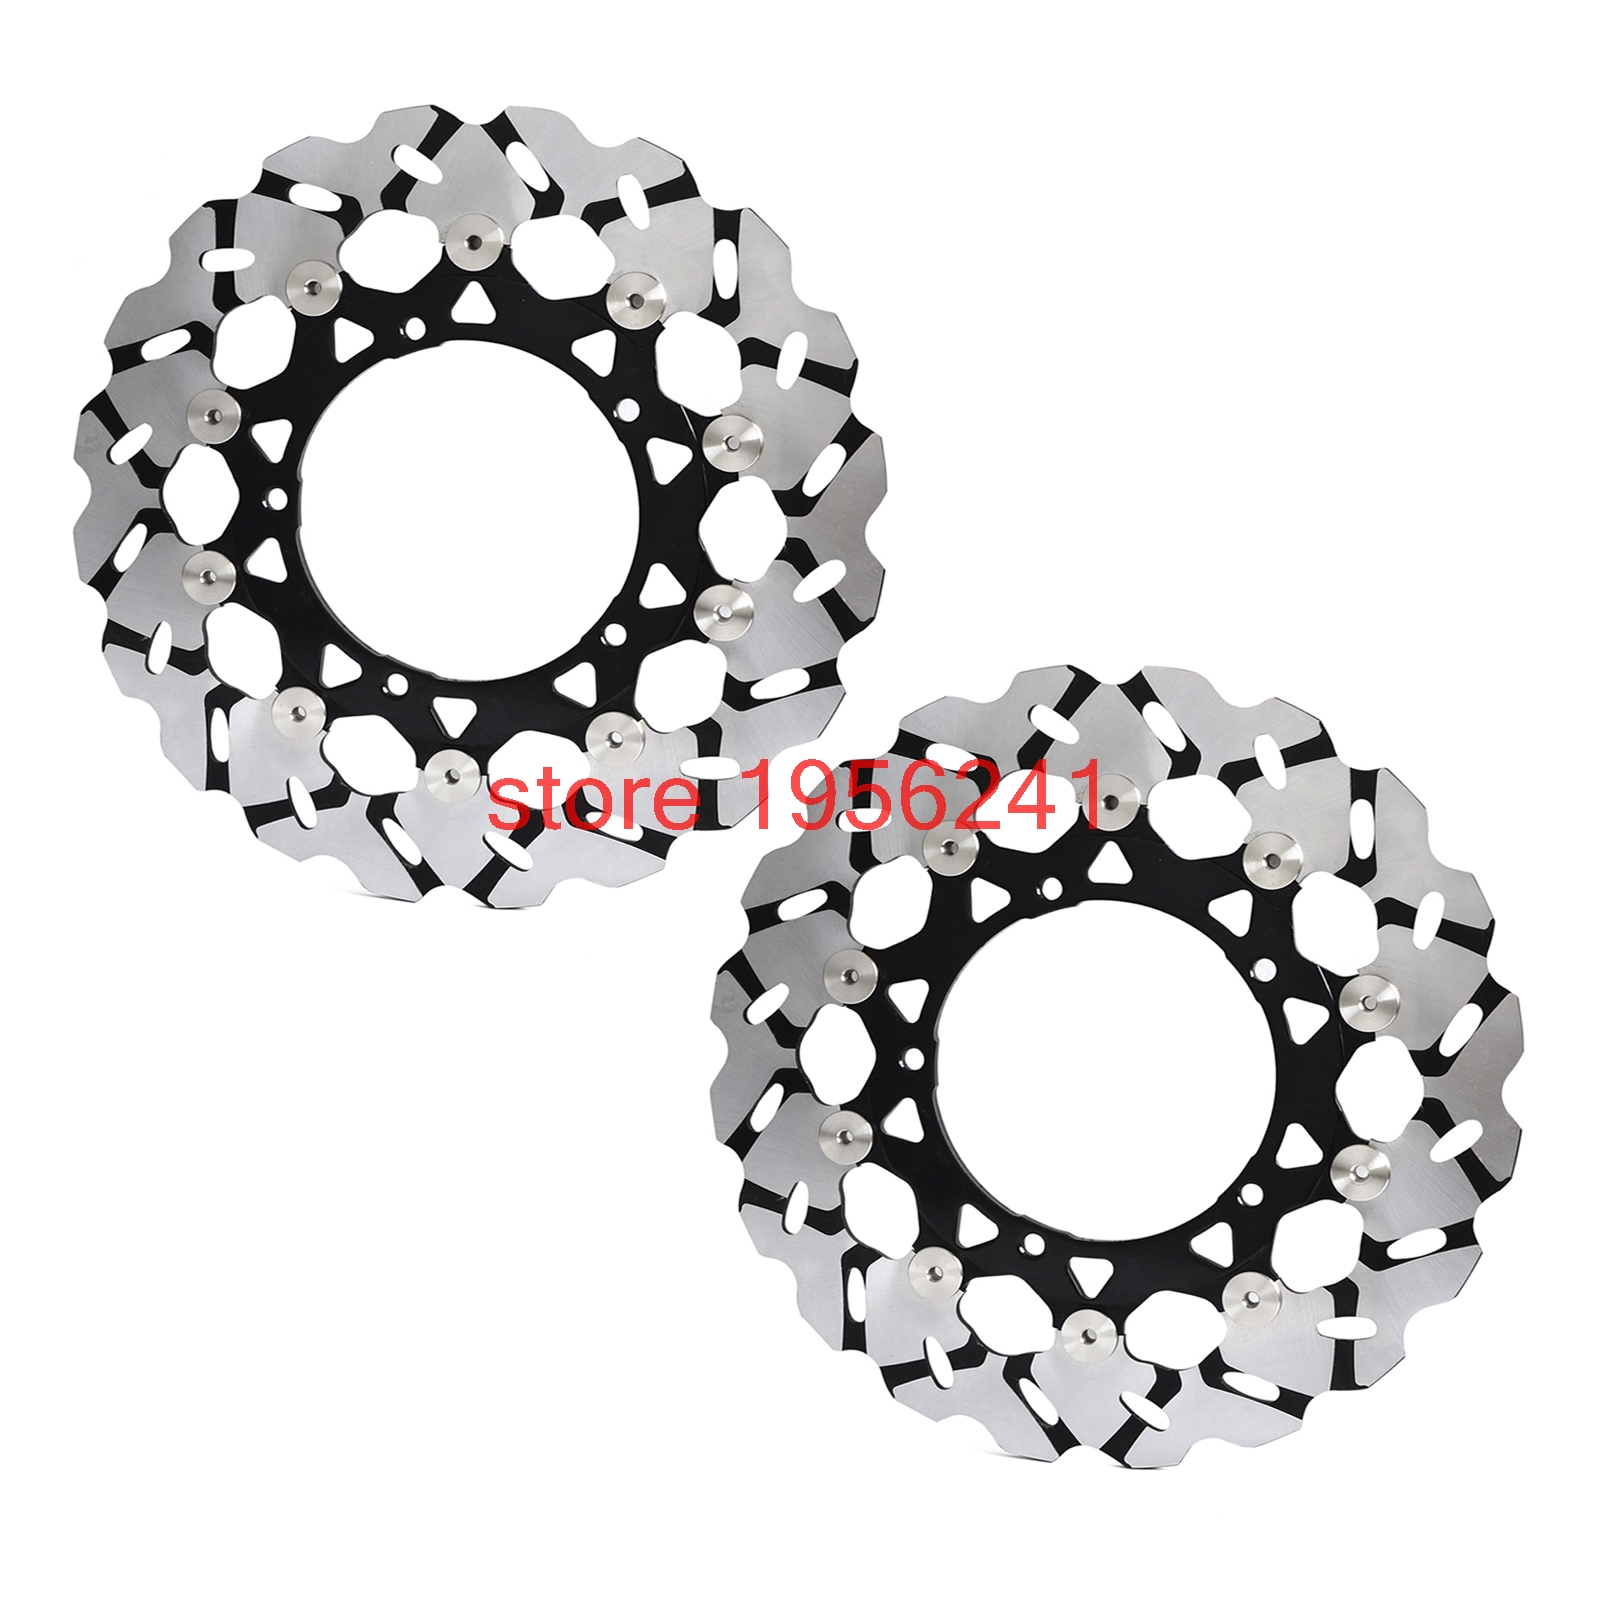 Motorcycle Front Brake Disc Disk For Yamaha FZ1 2006-2014 FZ1000 Fazer ABS 2007-2012 YZFR1 YZF-R1 2004 2005 2006 YZF R1 NEW motorcycle fender eliminator tidy tail for yamaha yzf r1 yzf r1 yzfr1 2004 2005 2006 2007 2008 2009 2010 2011 2012 chrome